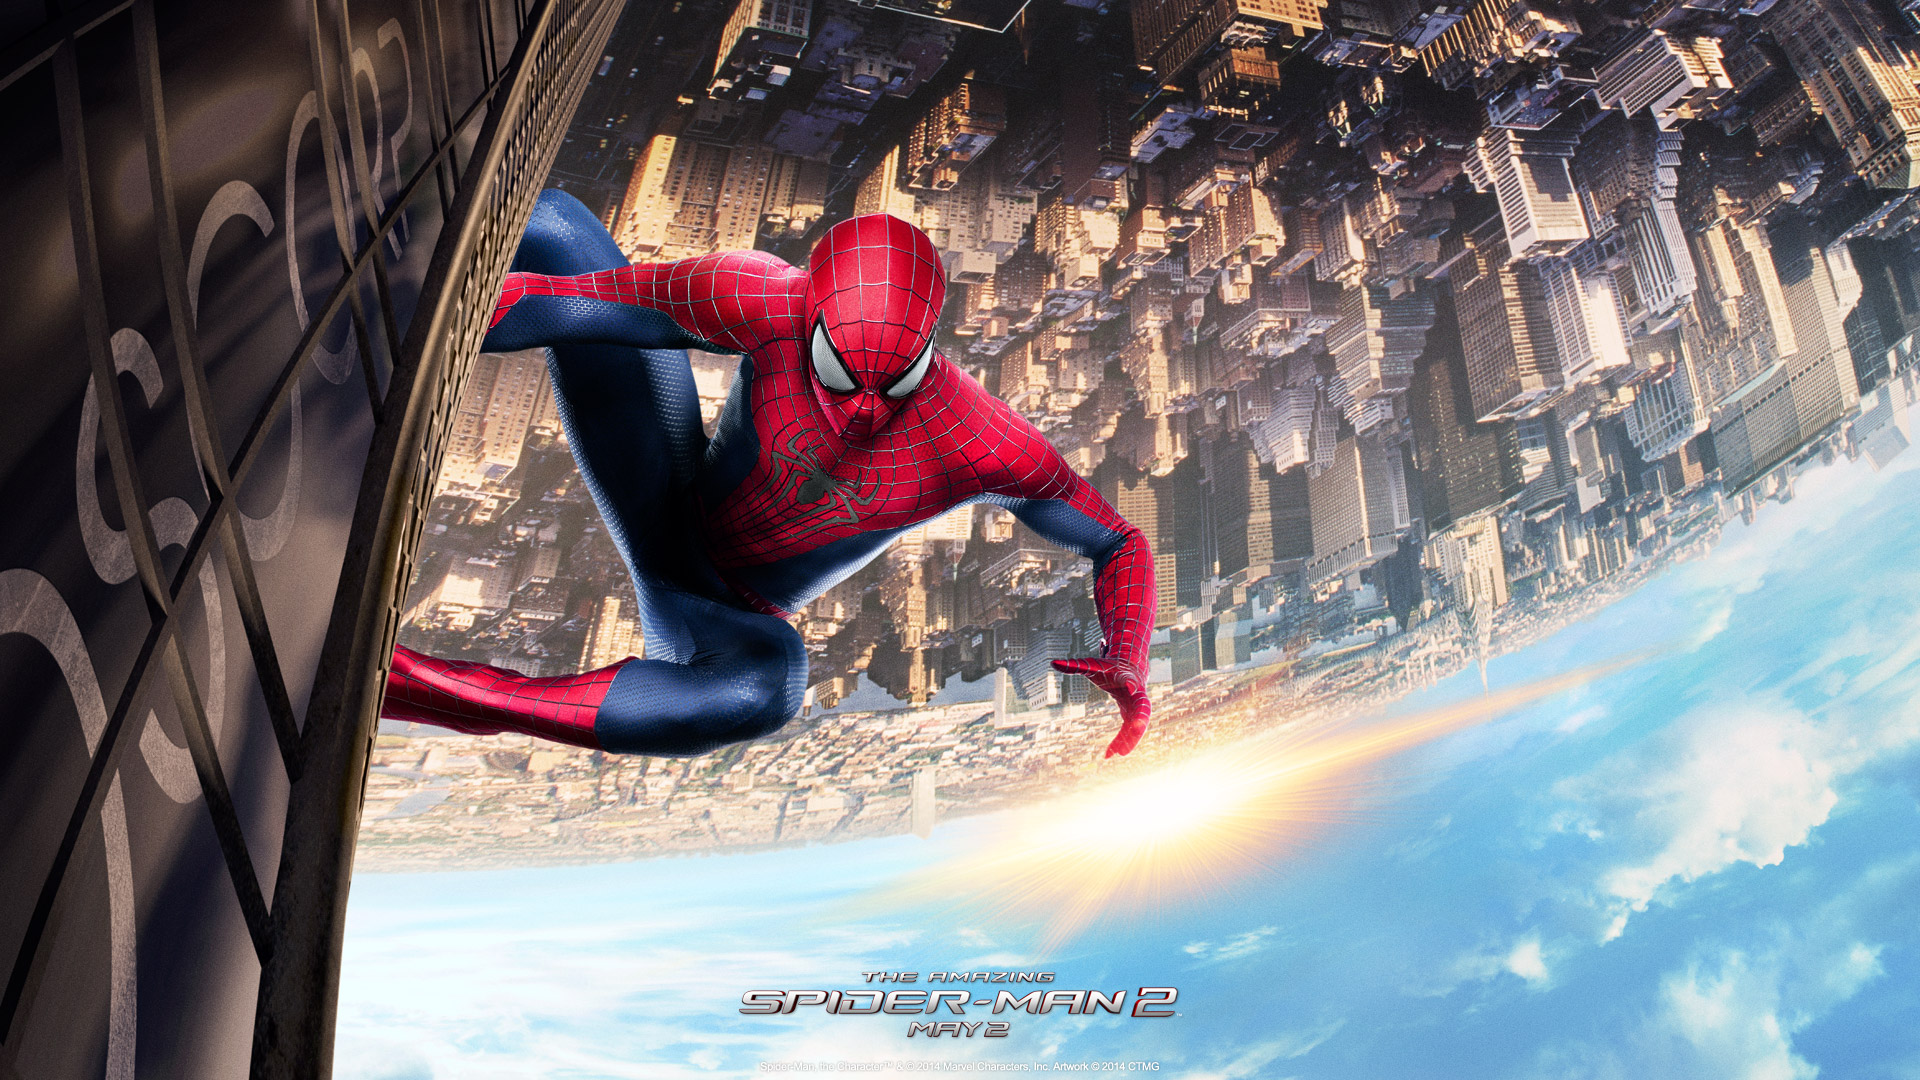 Spiderman awesome wallpapers - Images de spiderman ...